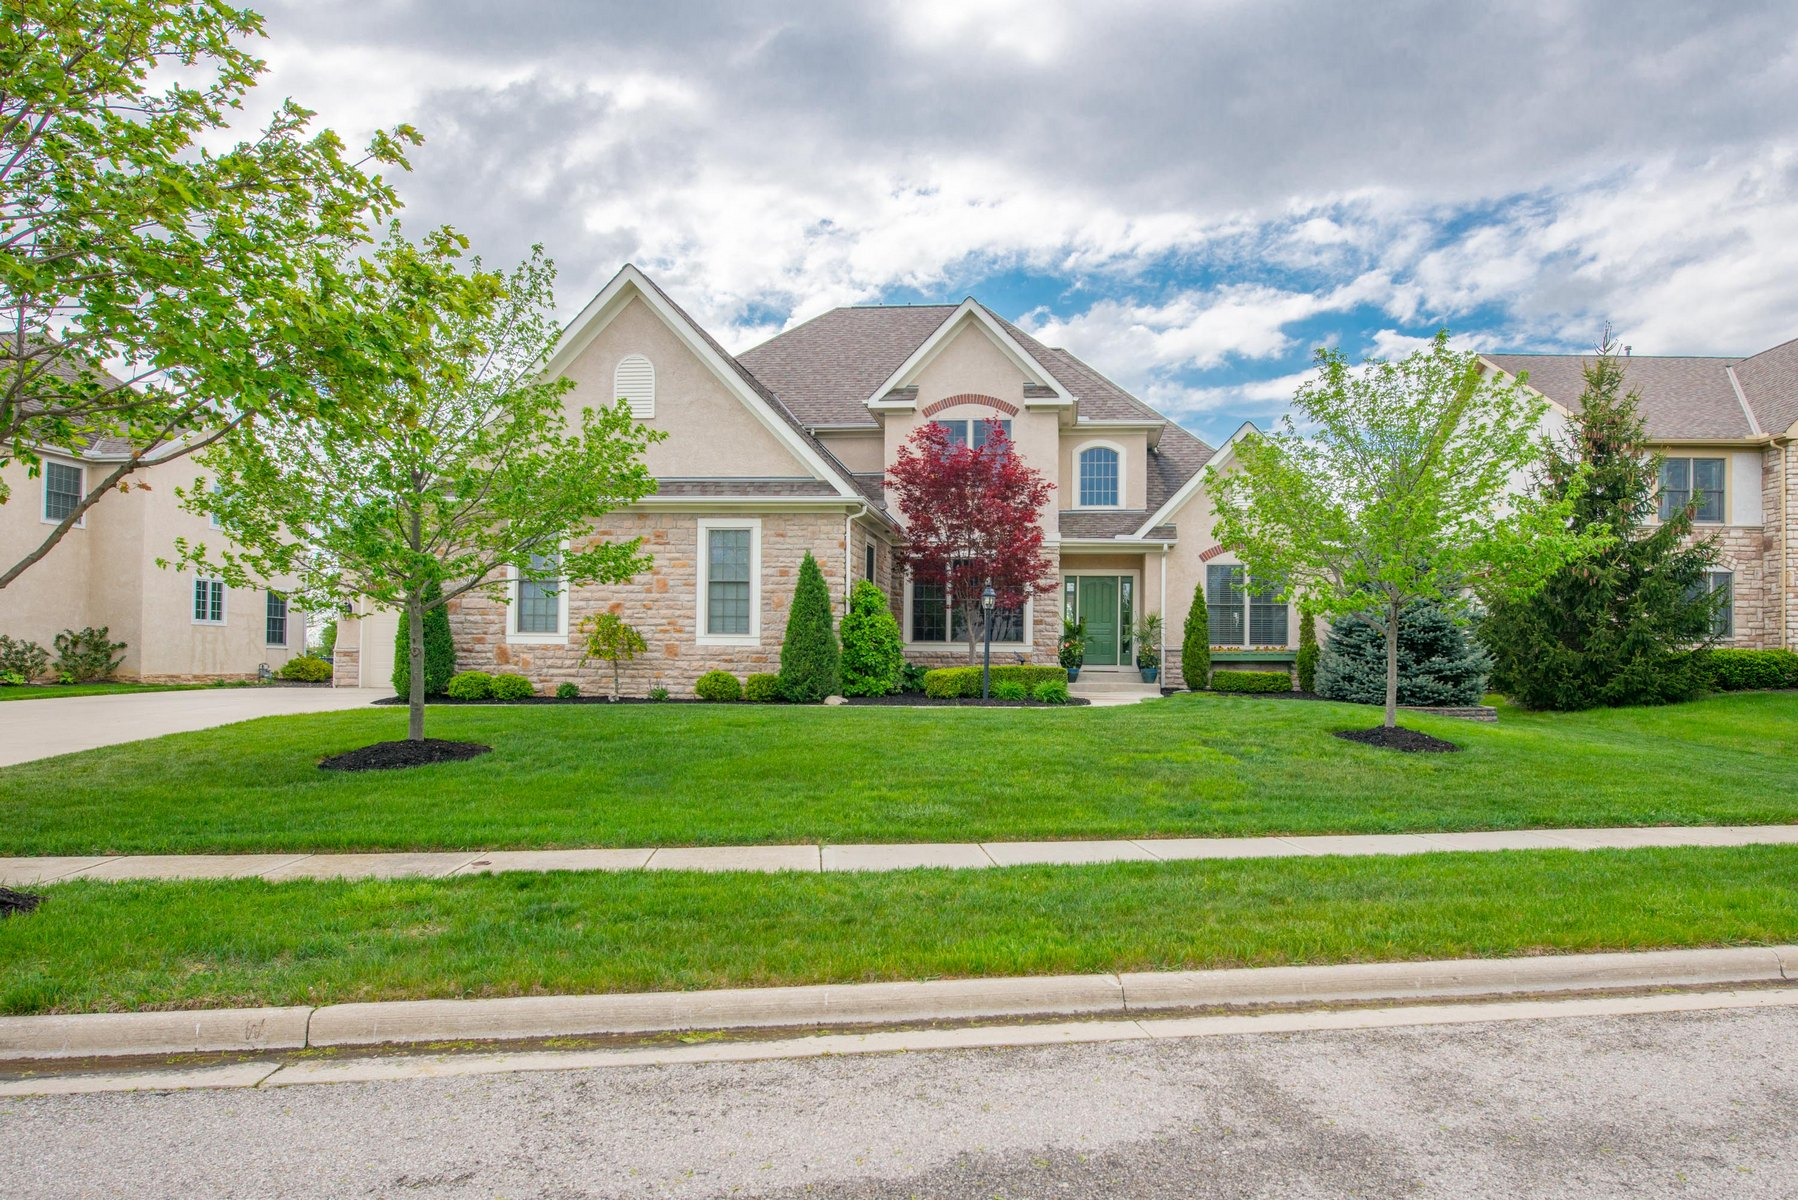 Single Family Home for Sale at 6619 Baronscourt Loop Dublin, Ohio 43016 United States